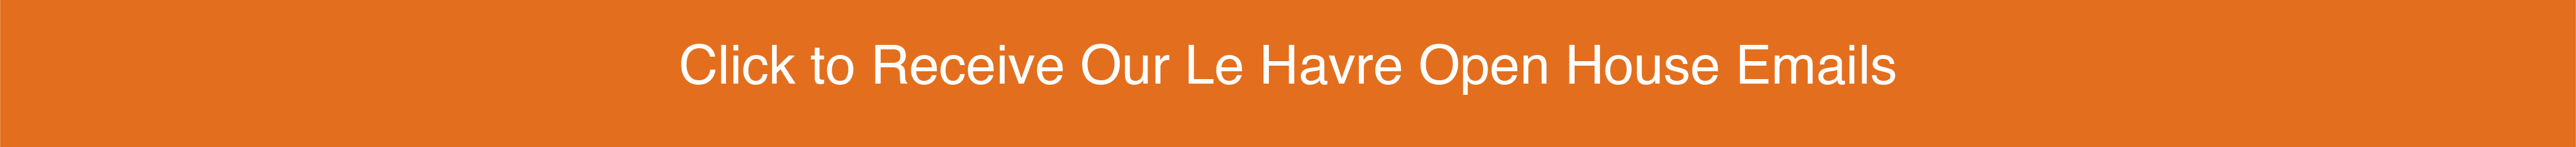 le havre open house email opt in